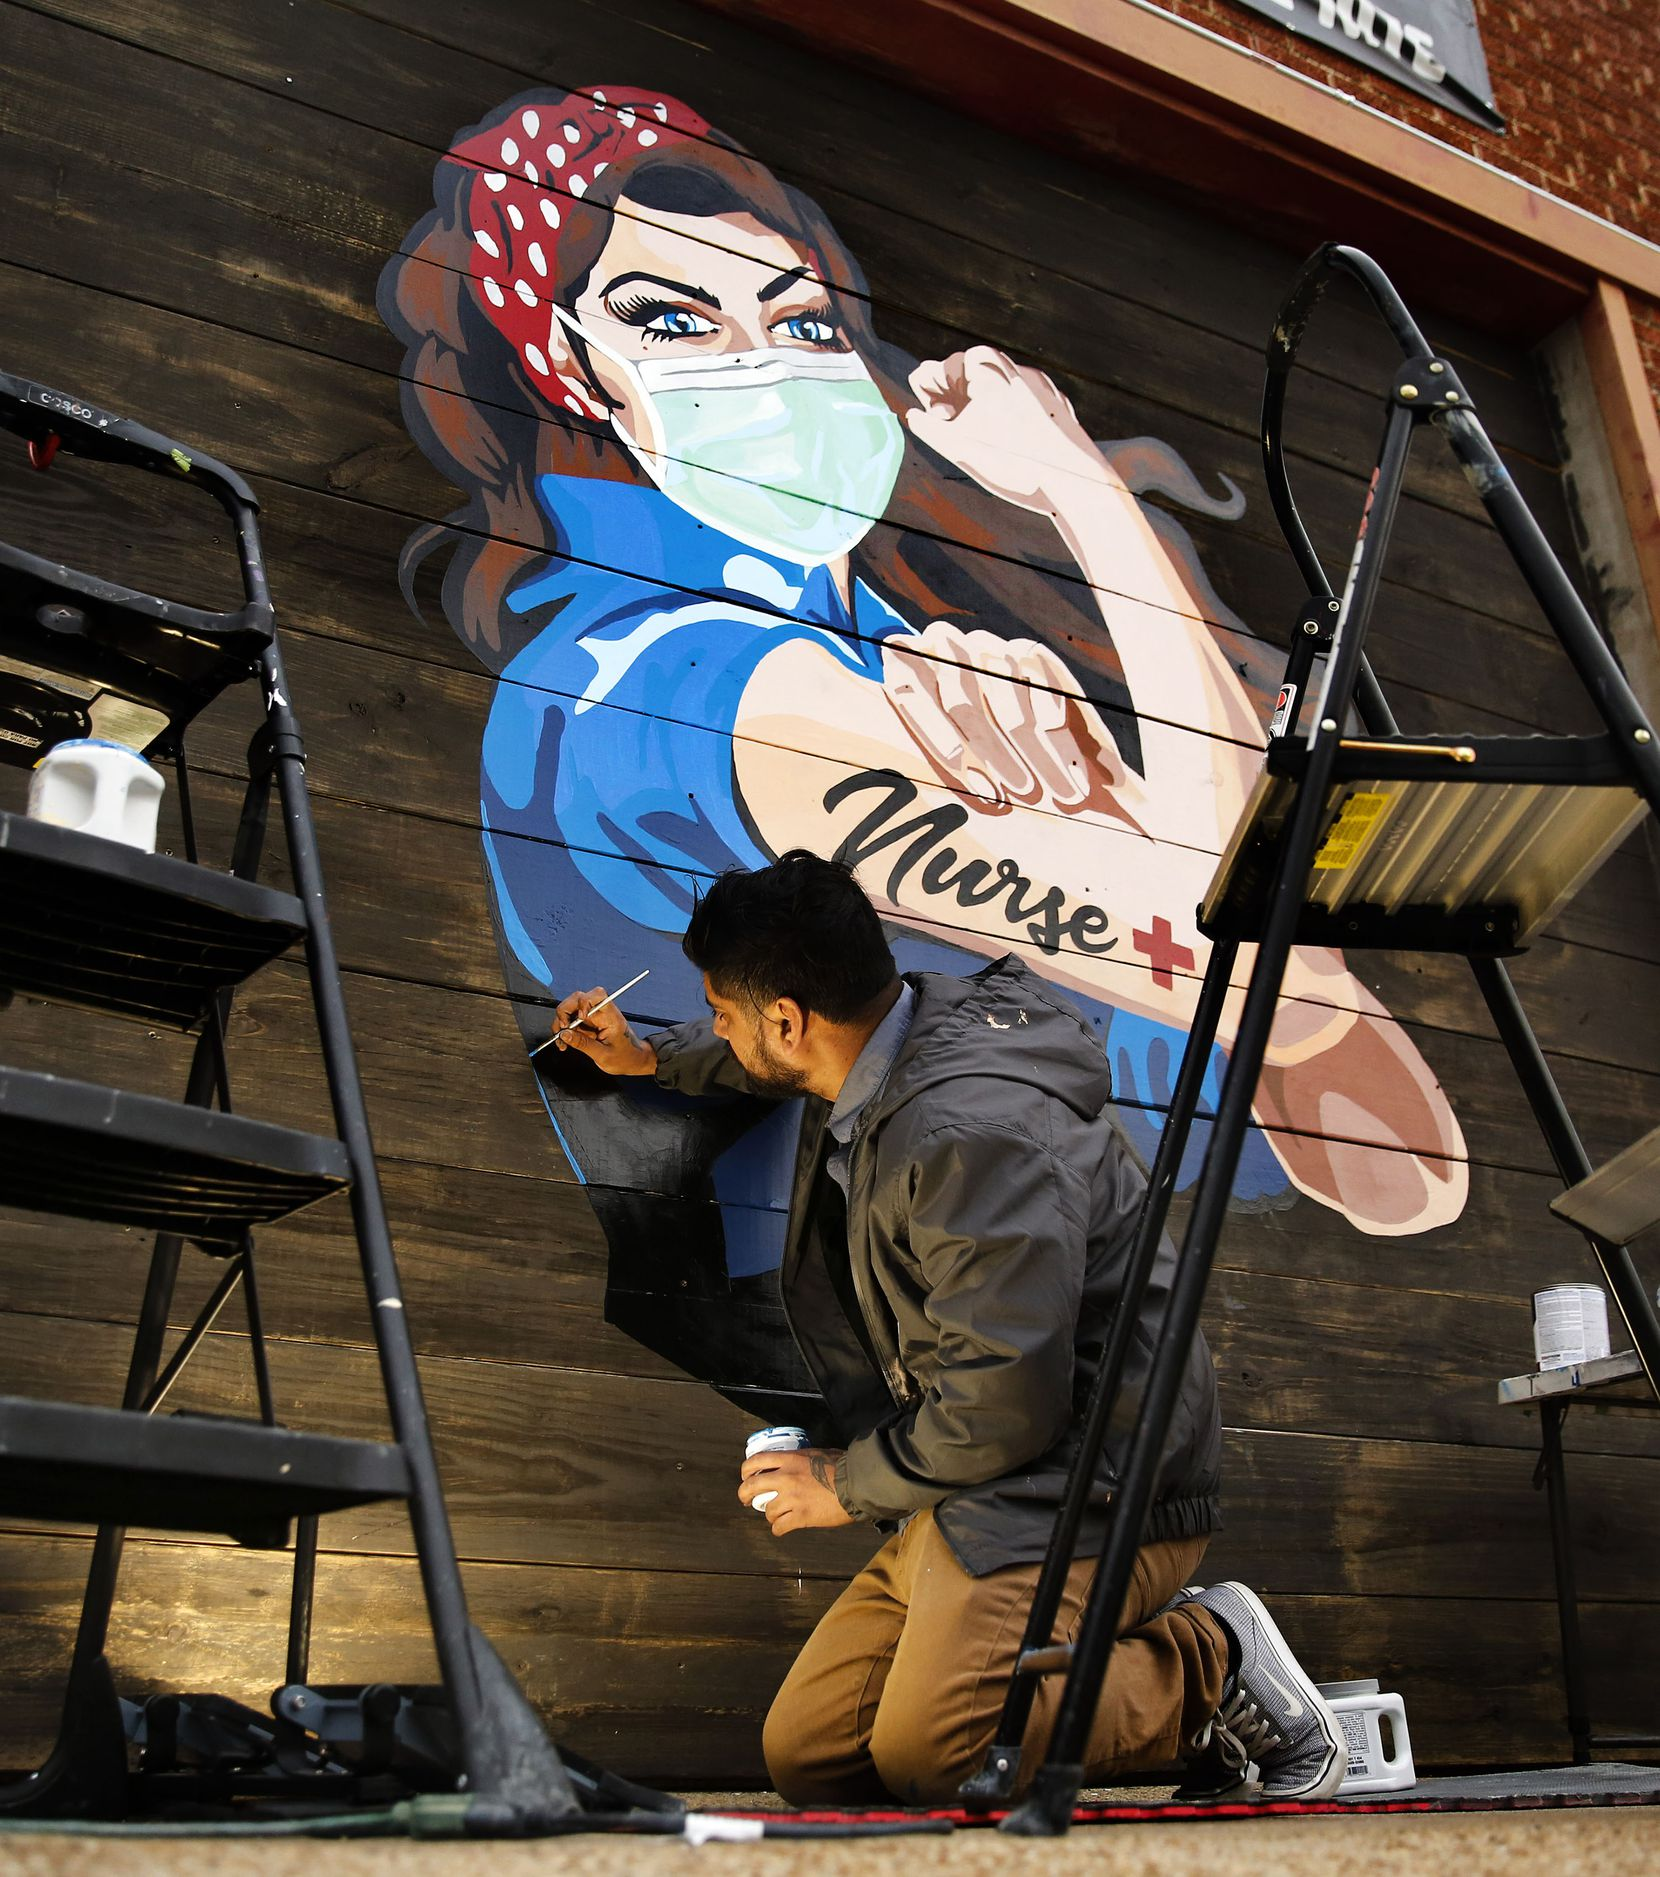 Dallas Artist Miguel Barajas paints a mural of a nurse on the exterior of Redfield's Tavern near Parkland Memorial Hospital, Thursday, April 2, 2020. The hospital is currently pursuing lawsuits against some of its former nurses for breaching their employment contracts by quitting early.